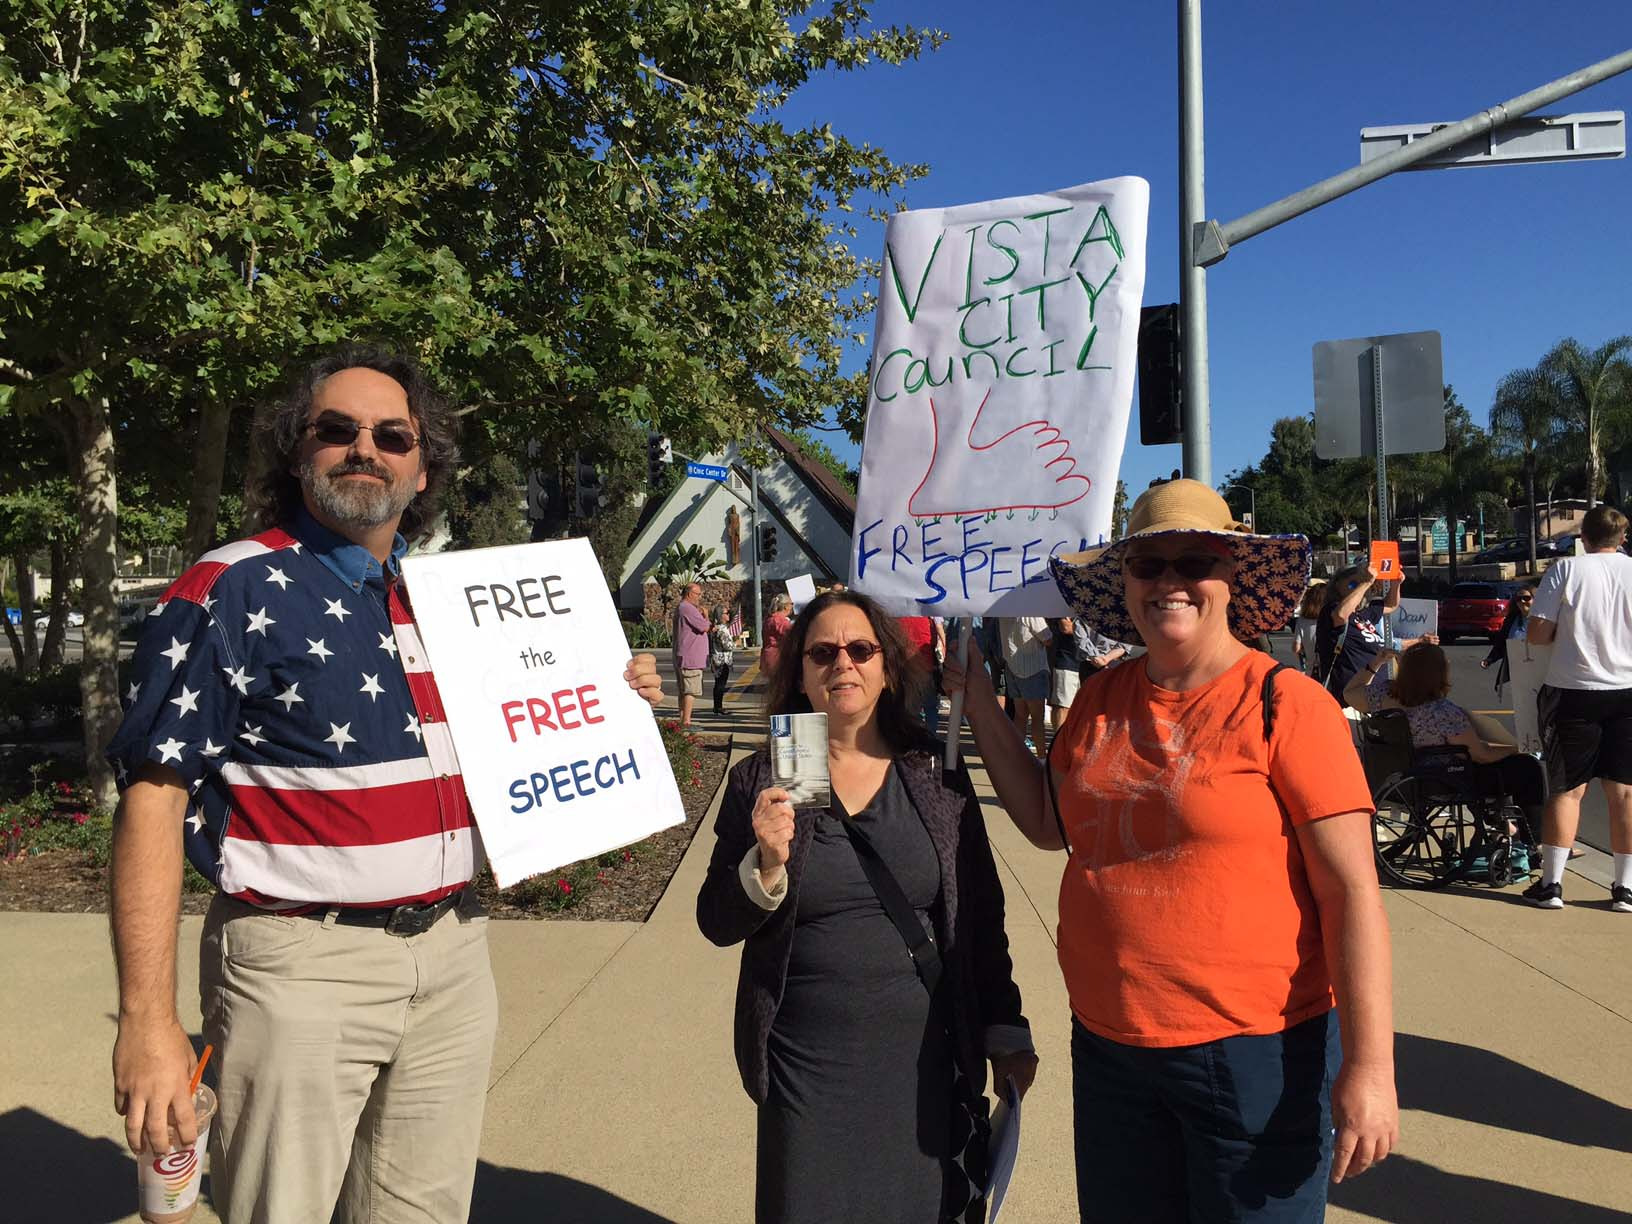 Protesters call for freedom of speech at Vista City Hall